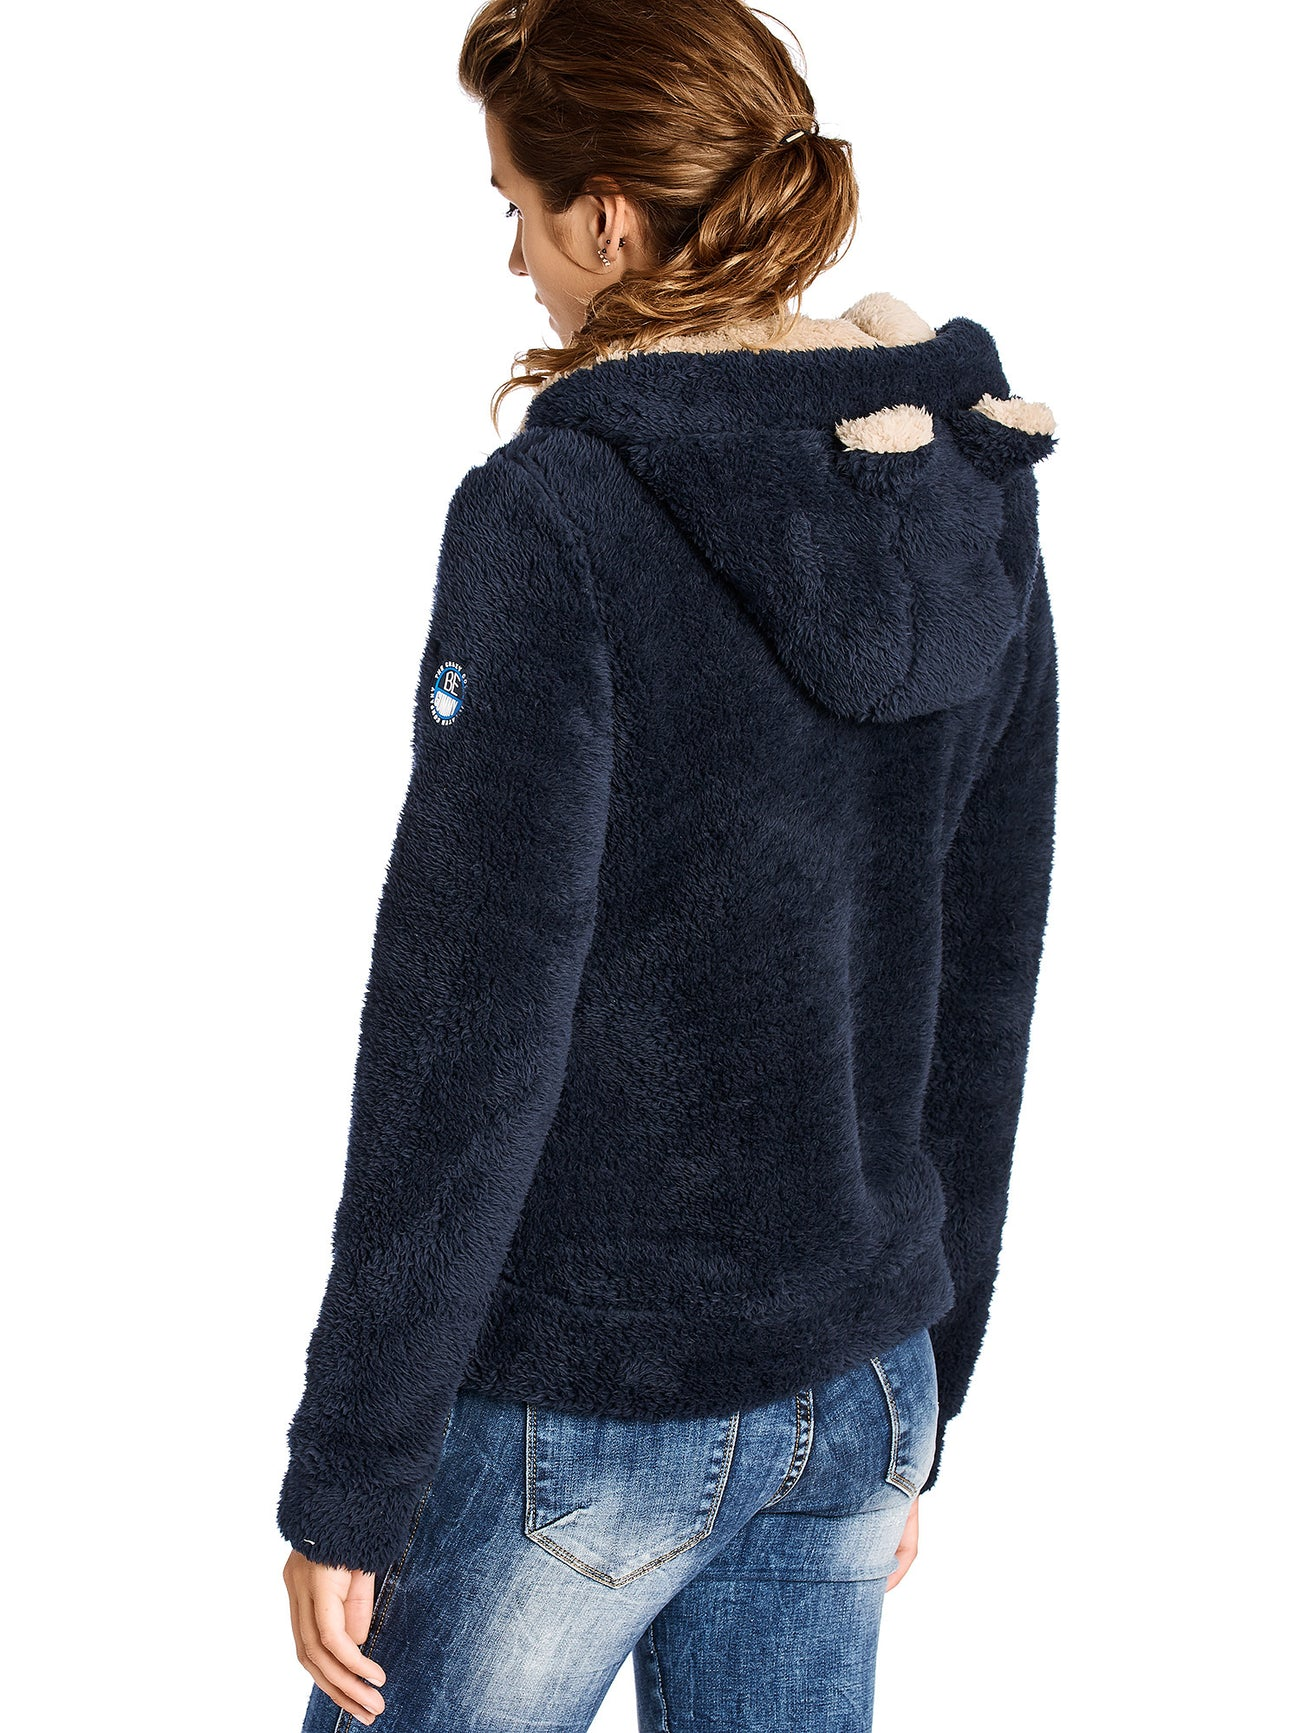 Rocket Blue Beige Contrast Soft Furry Sweater